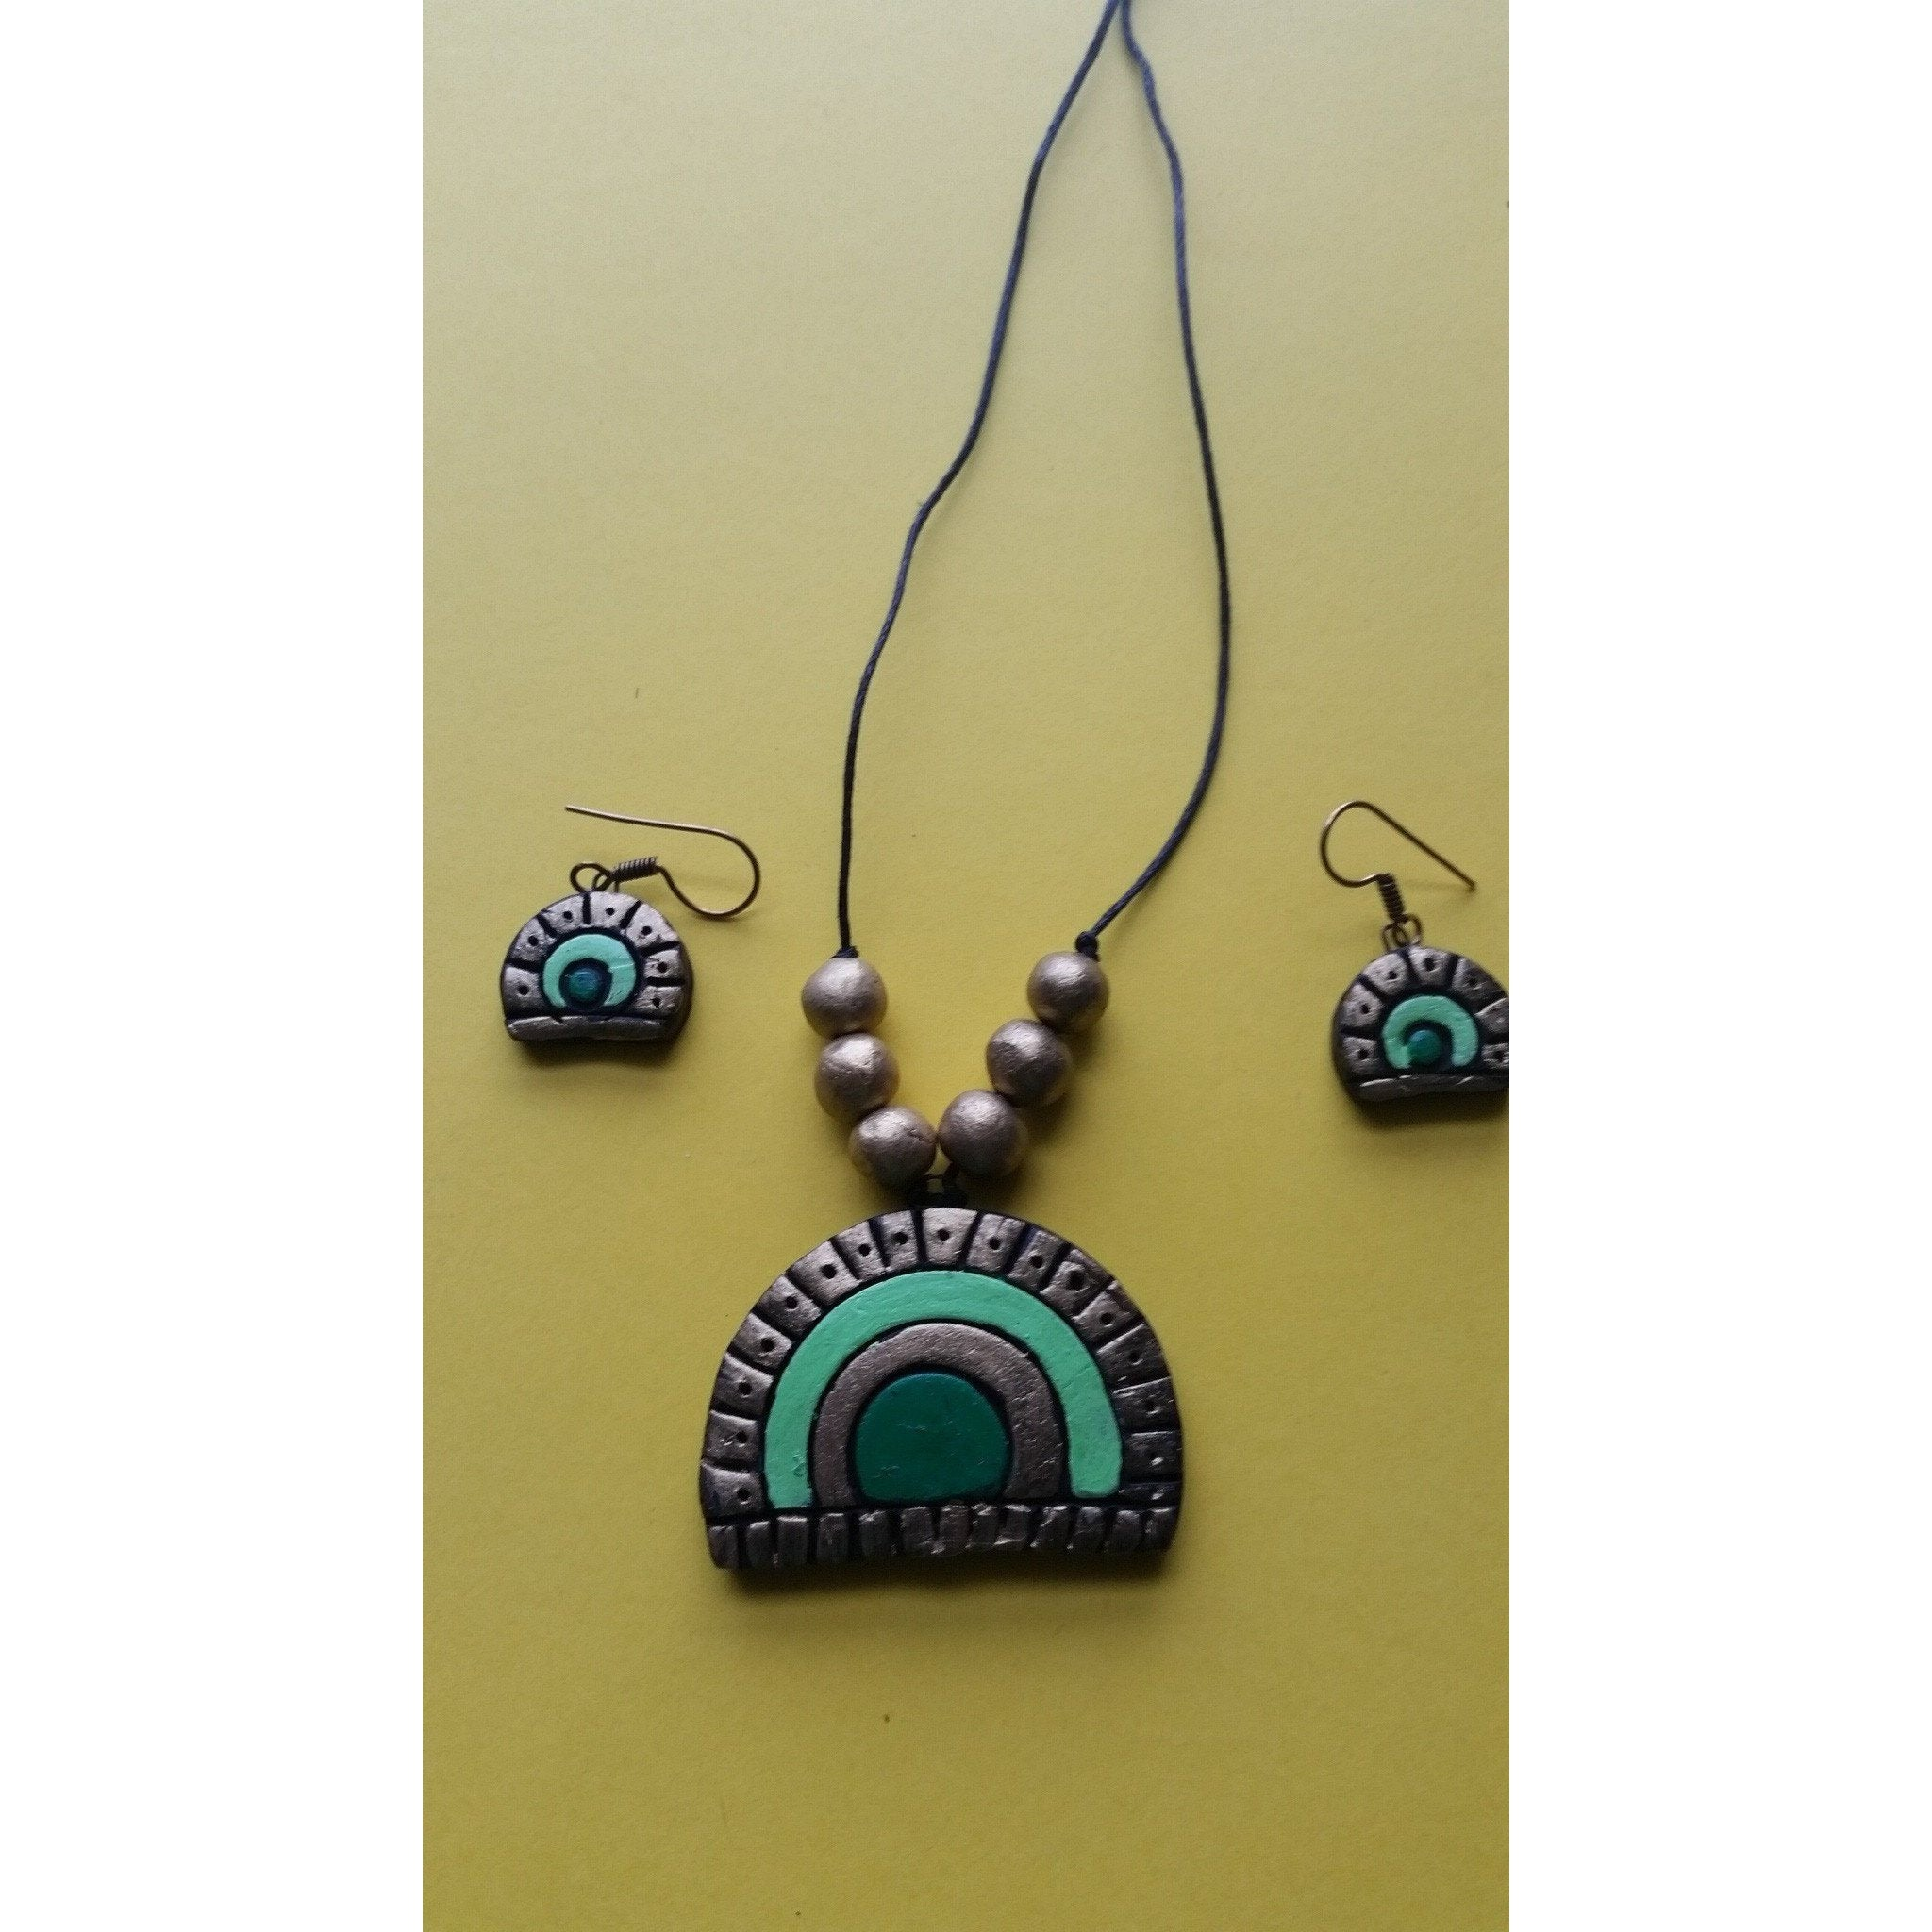 Handmade Terracotta Pendant Chain Set Green